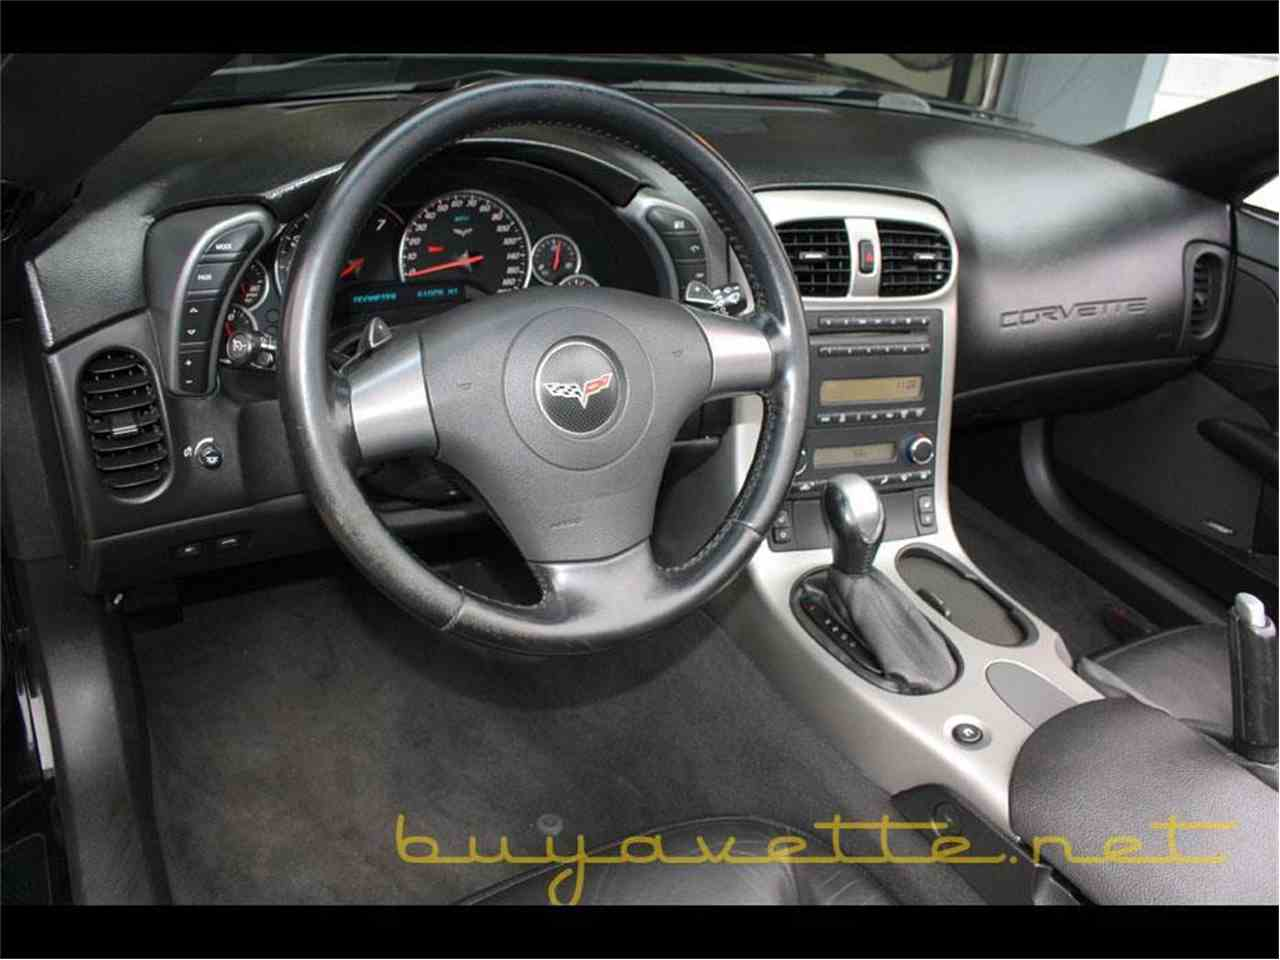 Large Picture of 2006 Chevrolet Corvette located in Georgia - $21,999.00 Offered by Buyavette - M6BM